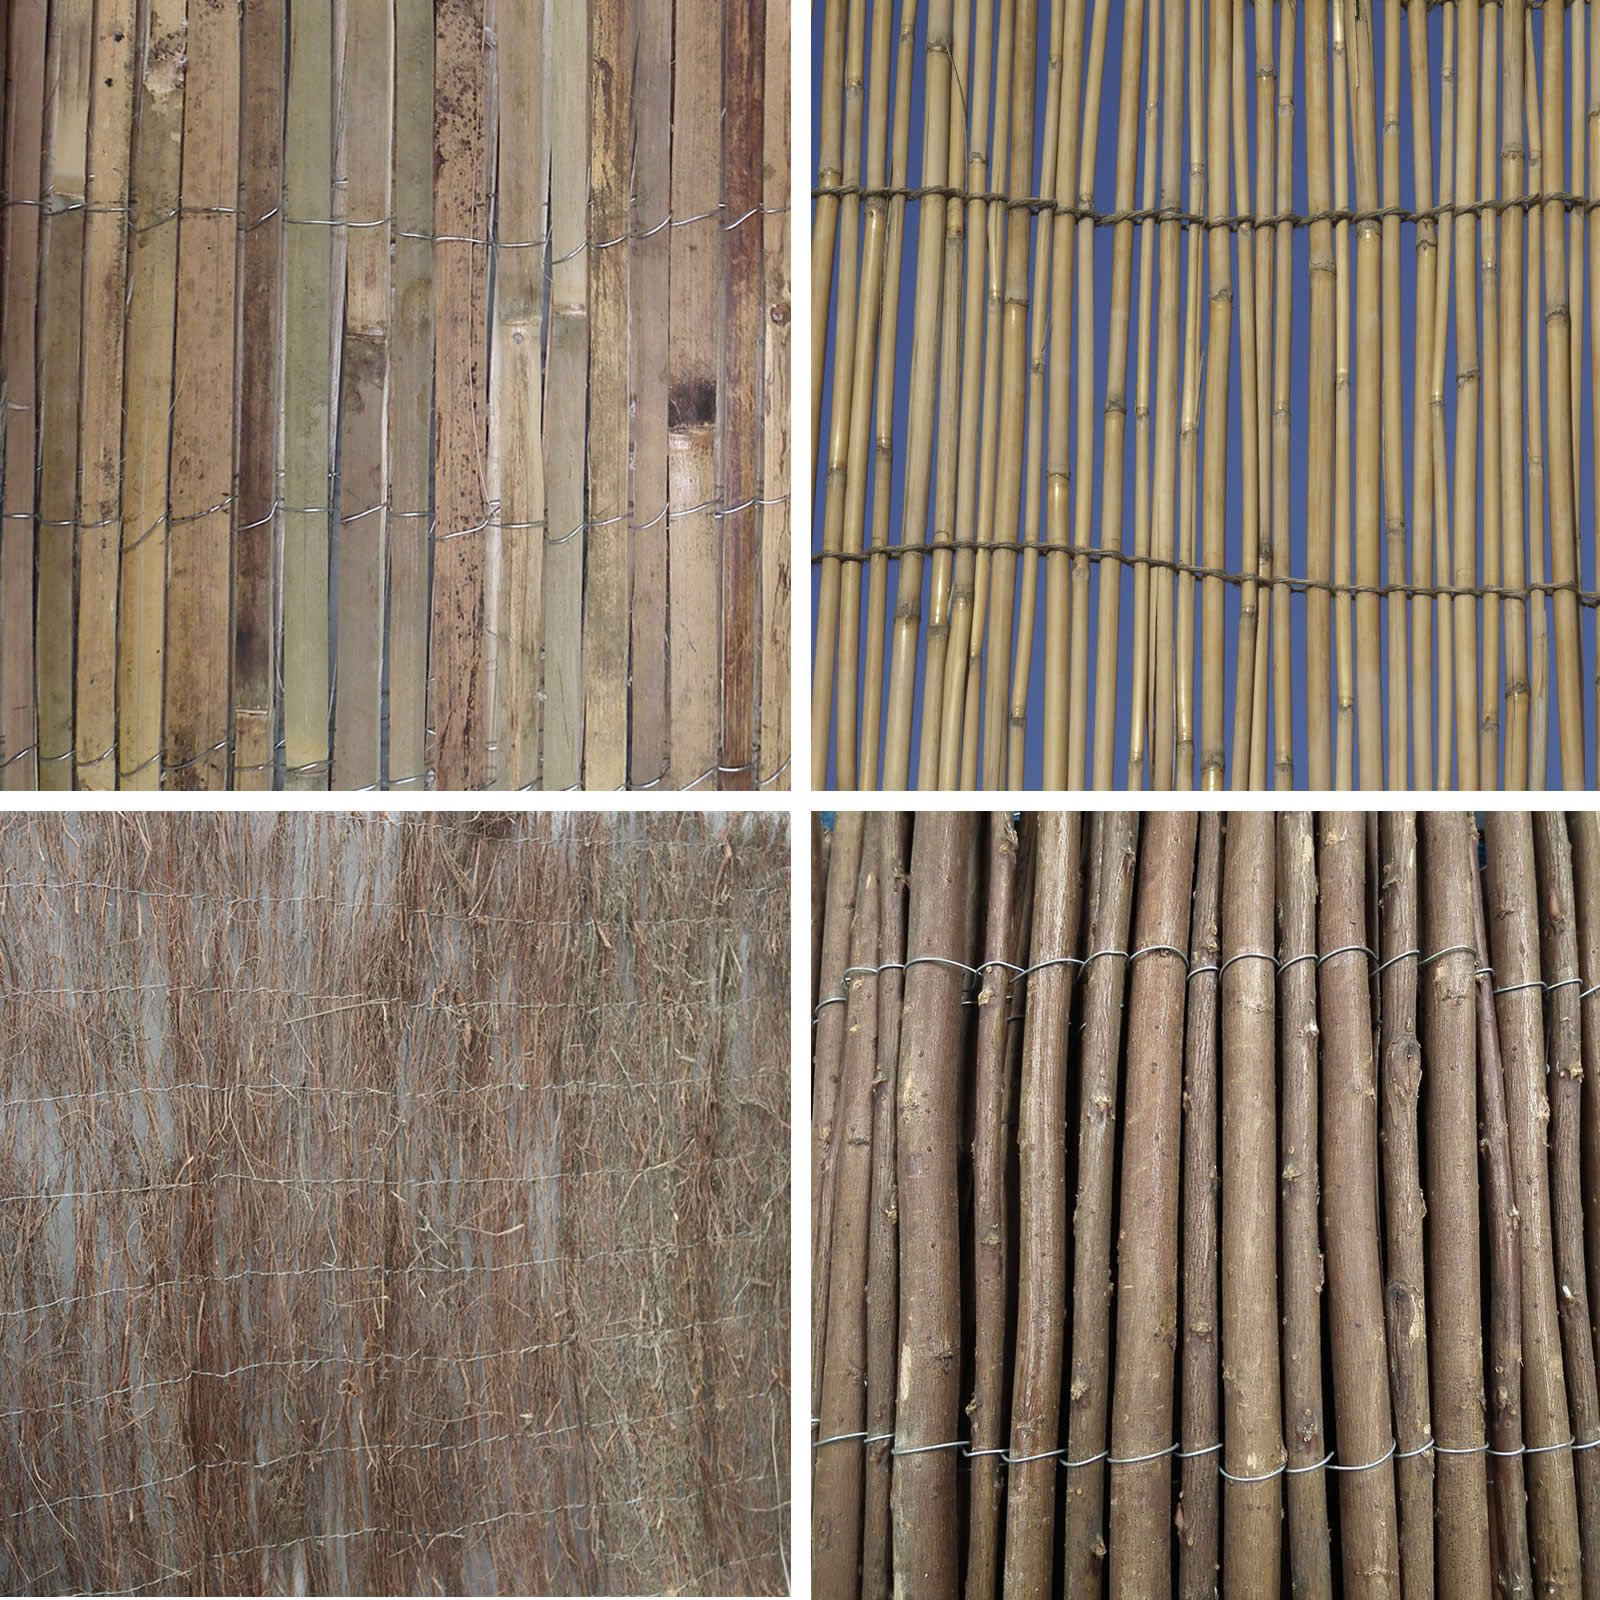 Garden divider screening border bamboo slat willow reed brushwood